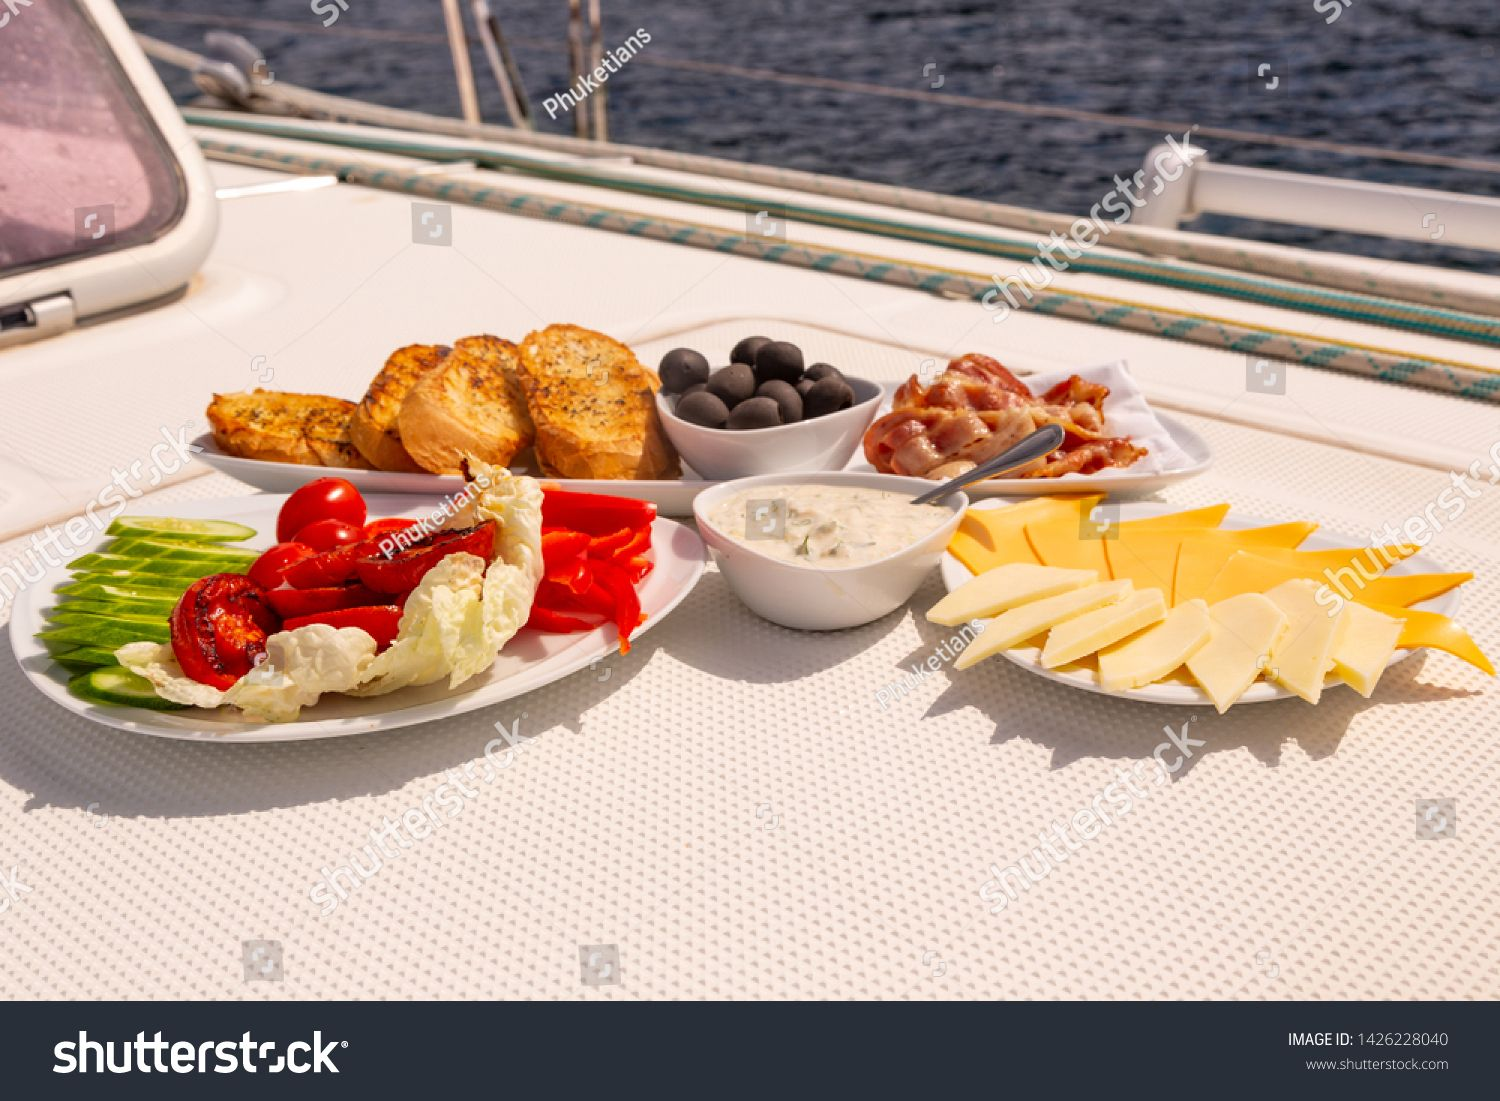 American breakfast on sailing yacht. Luxury holiday meal at the sea on the yacht. Bacon, omelette,